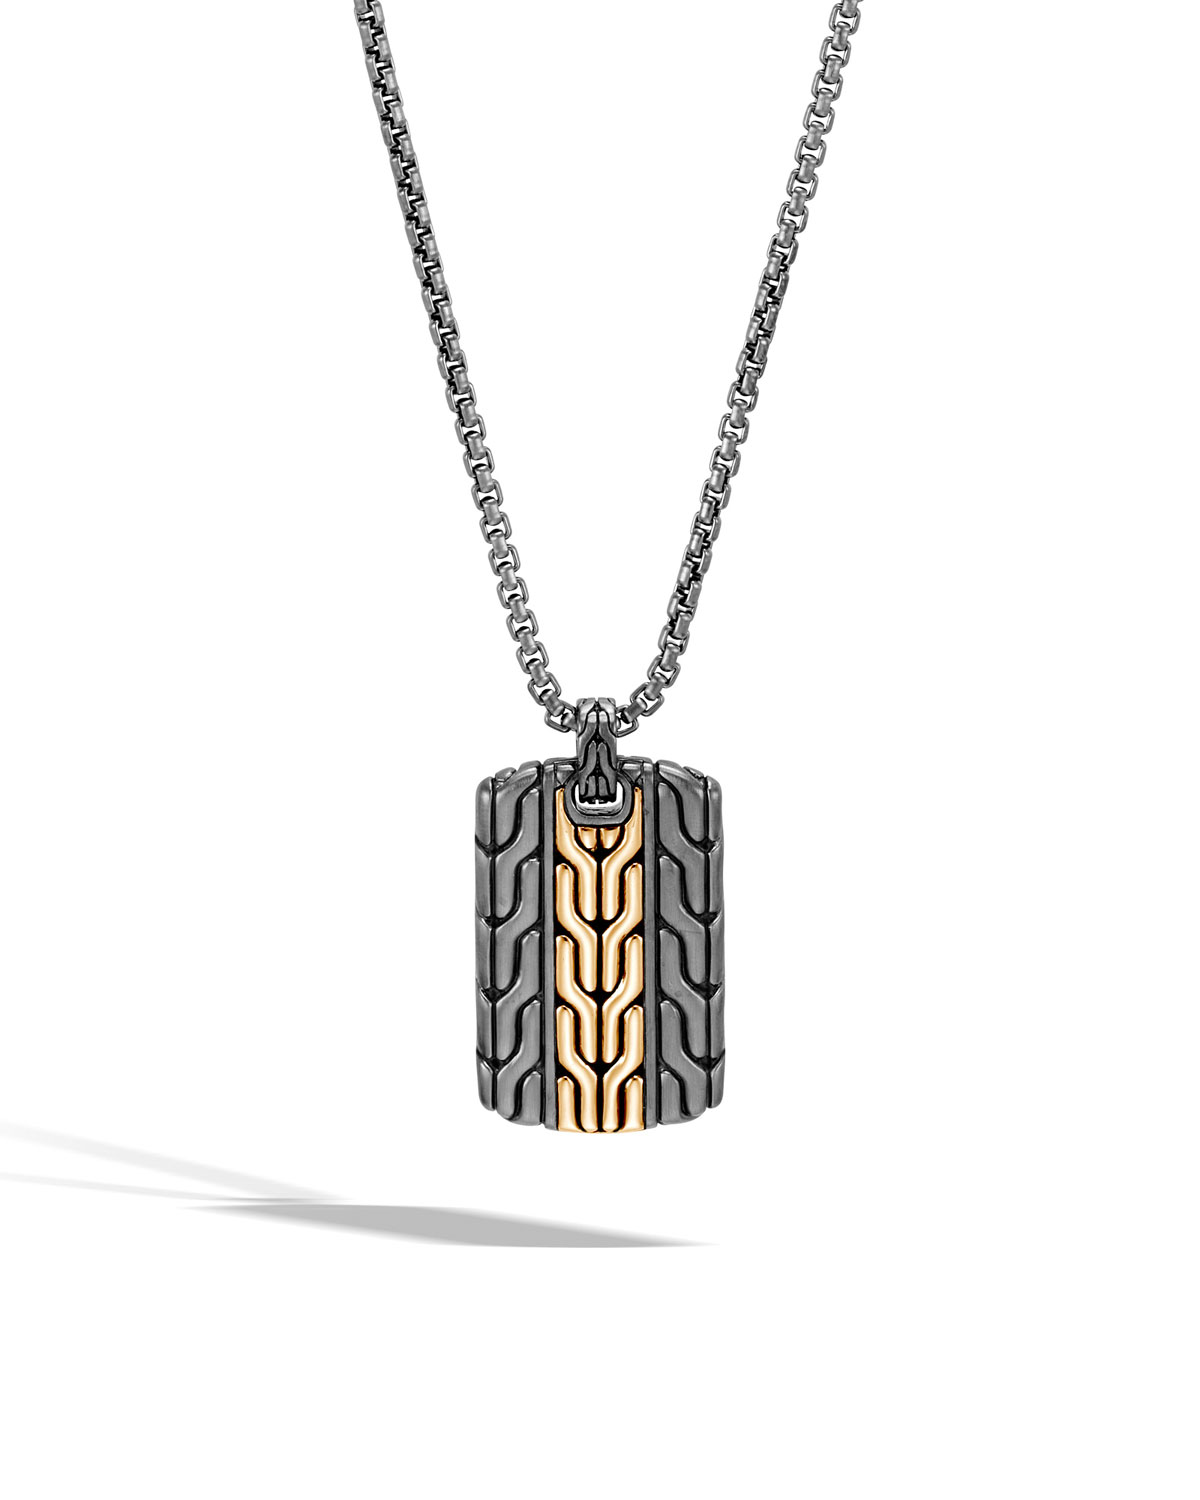 John Hardy Men S Classic Chain Dog Tag Necklace With